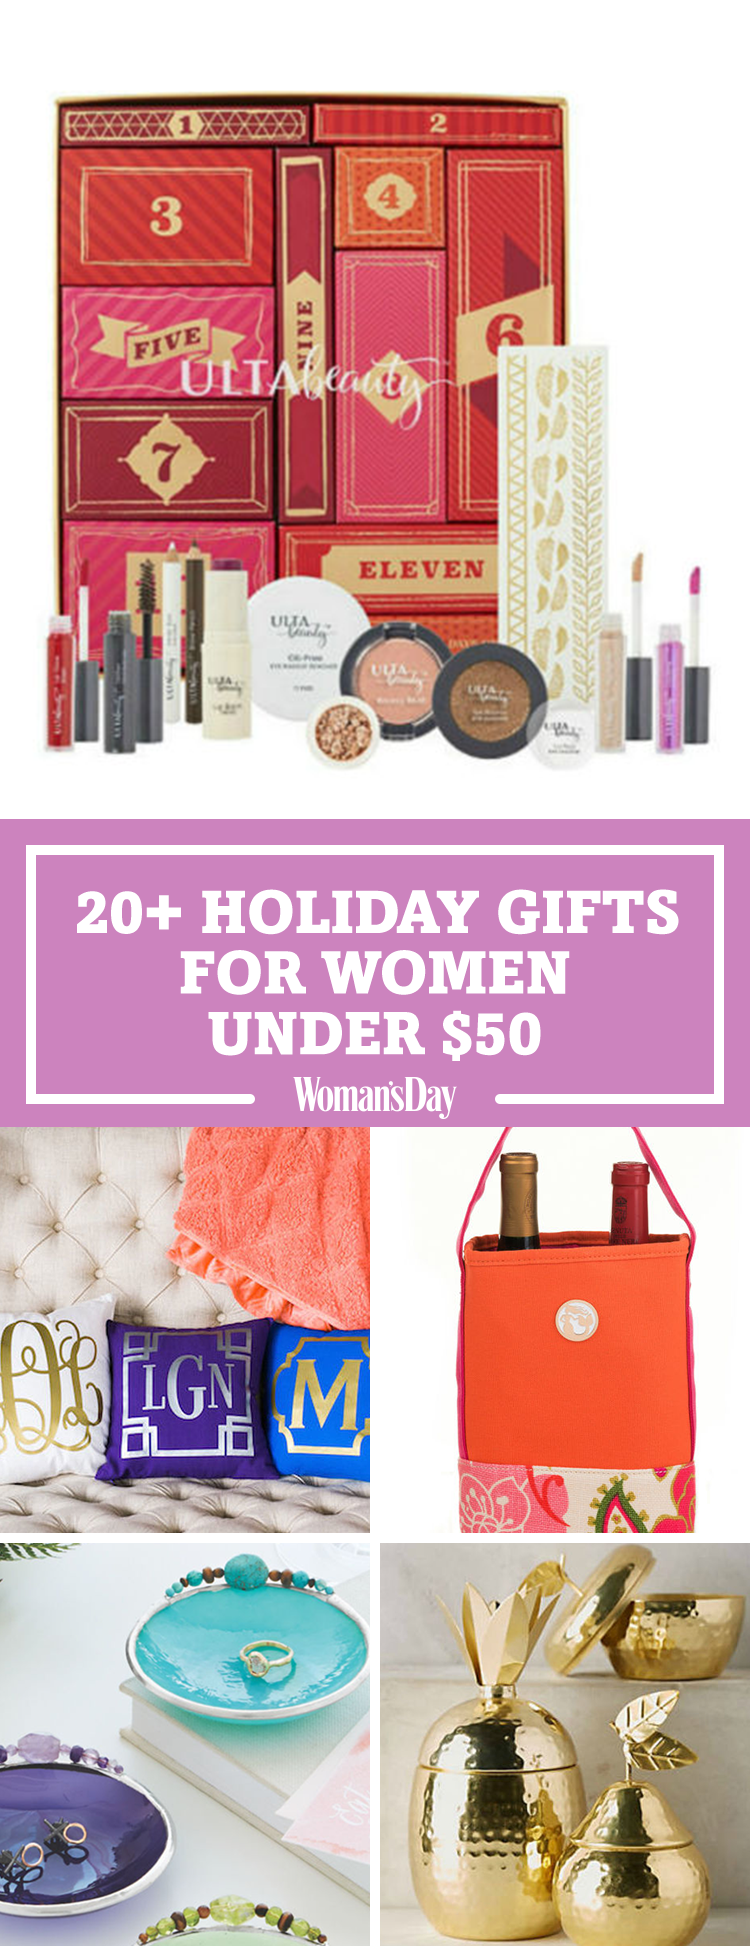 Gifts forwomen great for women with